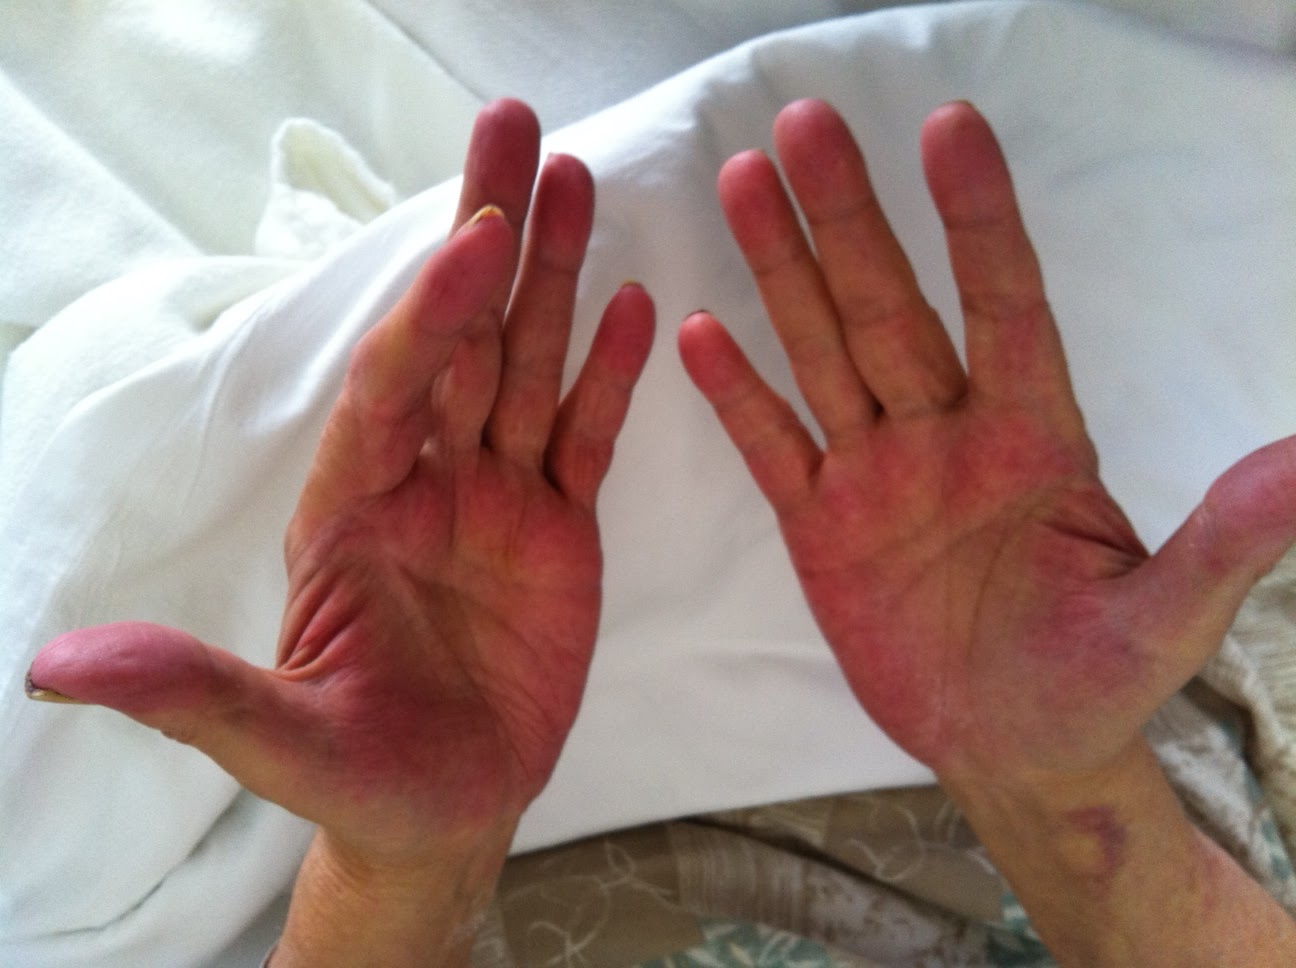 Palmar-Erythema-From-Alcoholic-Liver-Disease